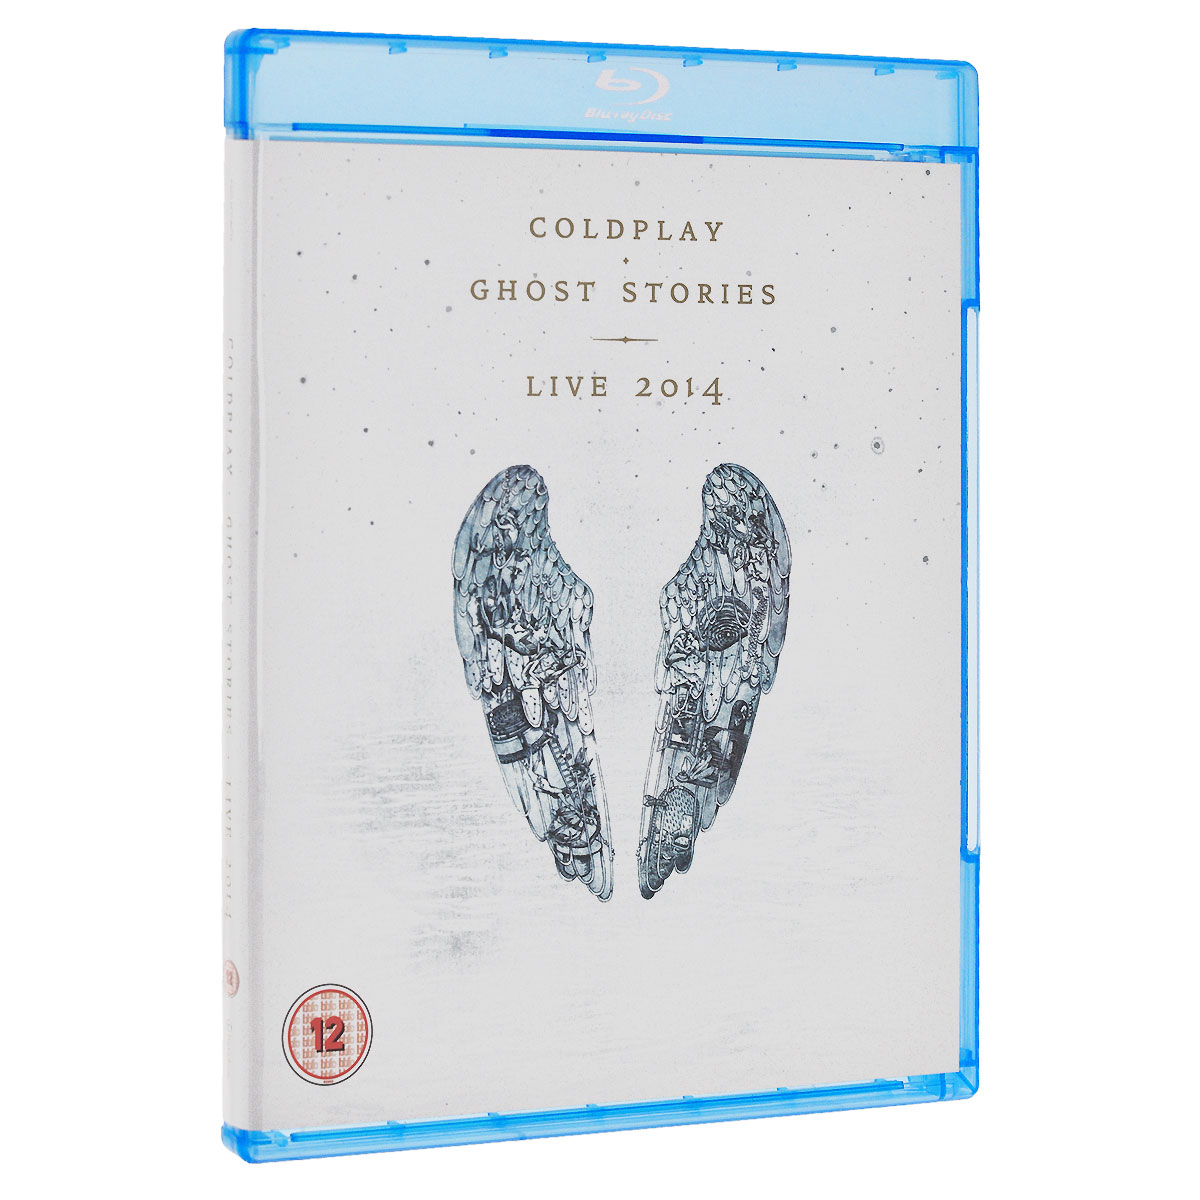 Coldplay. Ghost Stories. Live 2014 (Blu-ray + CD) phil collins going back live at roseland ballroom blu ray